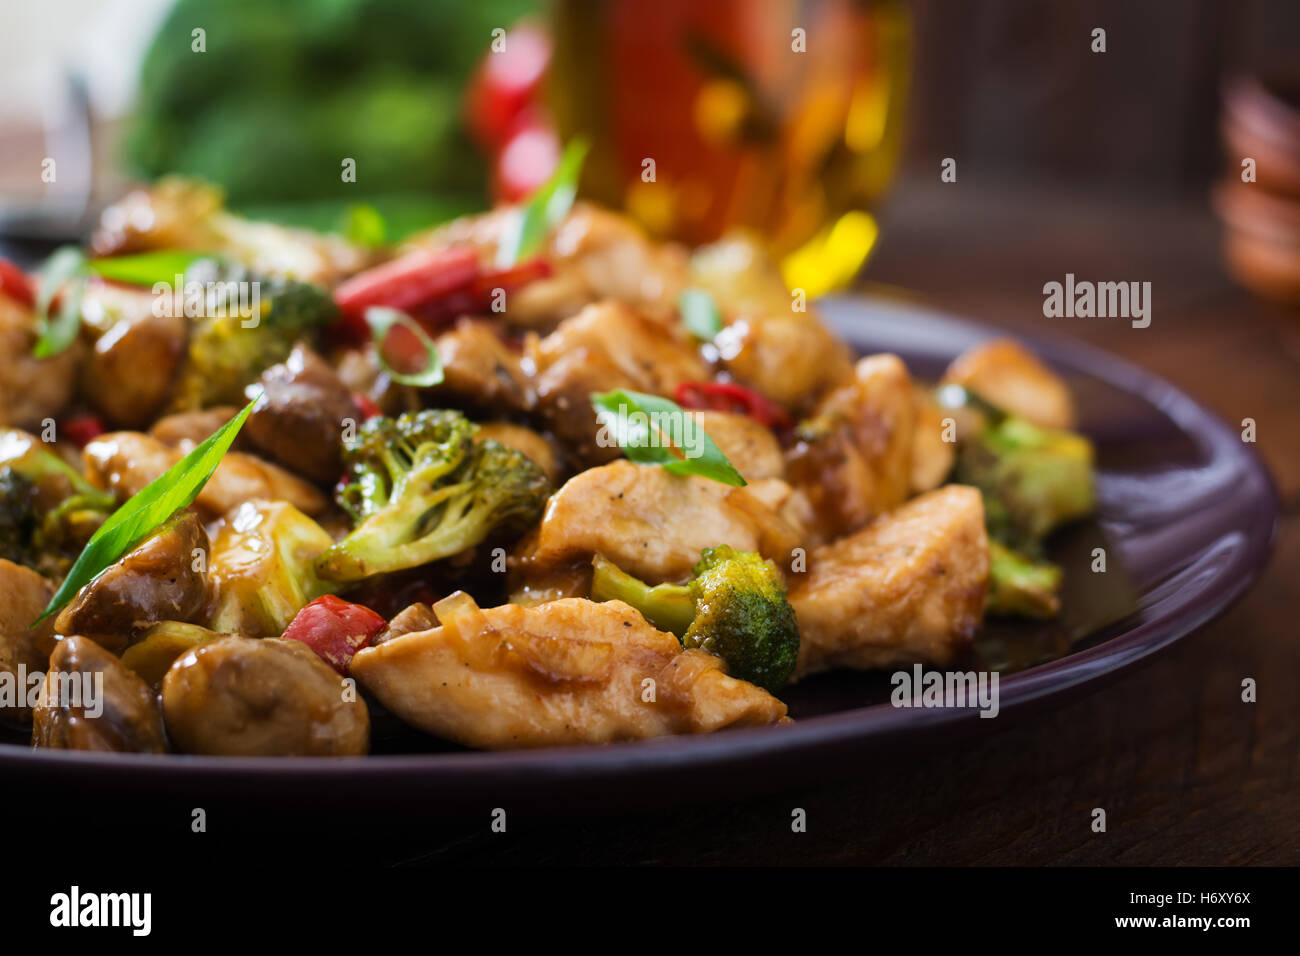 Stir fry with chicken mushrooms broccoli and peppers chinese stir fry with chicken mushrooms broccoli and peppers chinese food forumfinder Image collections